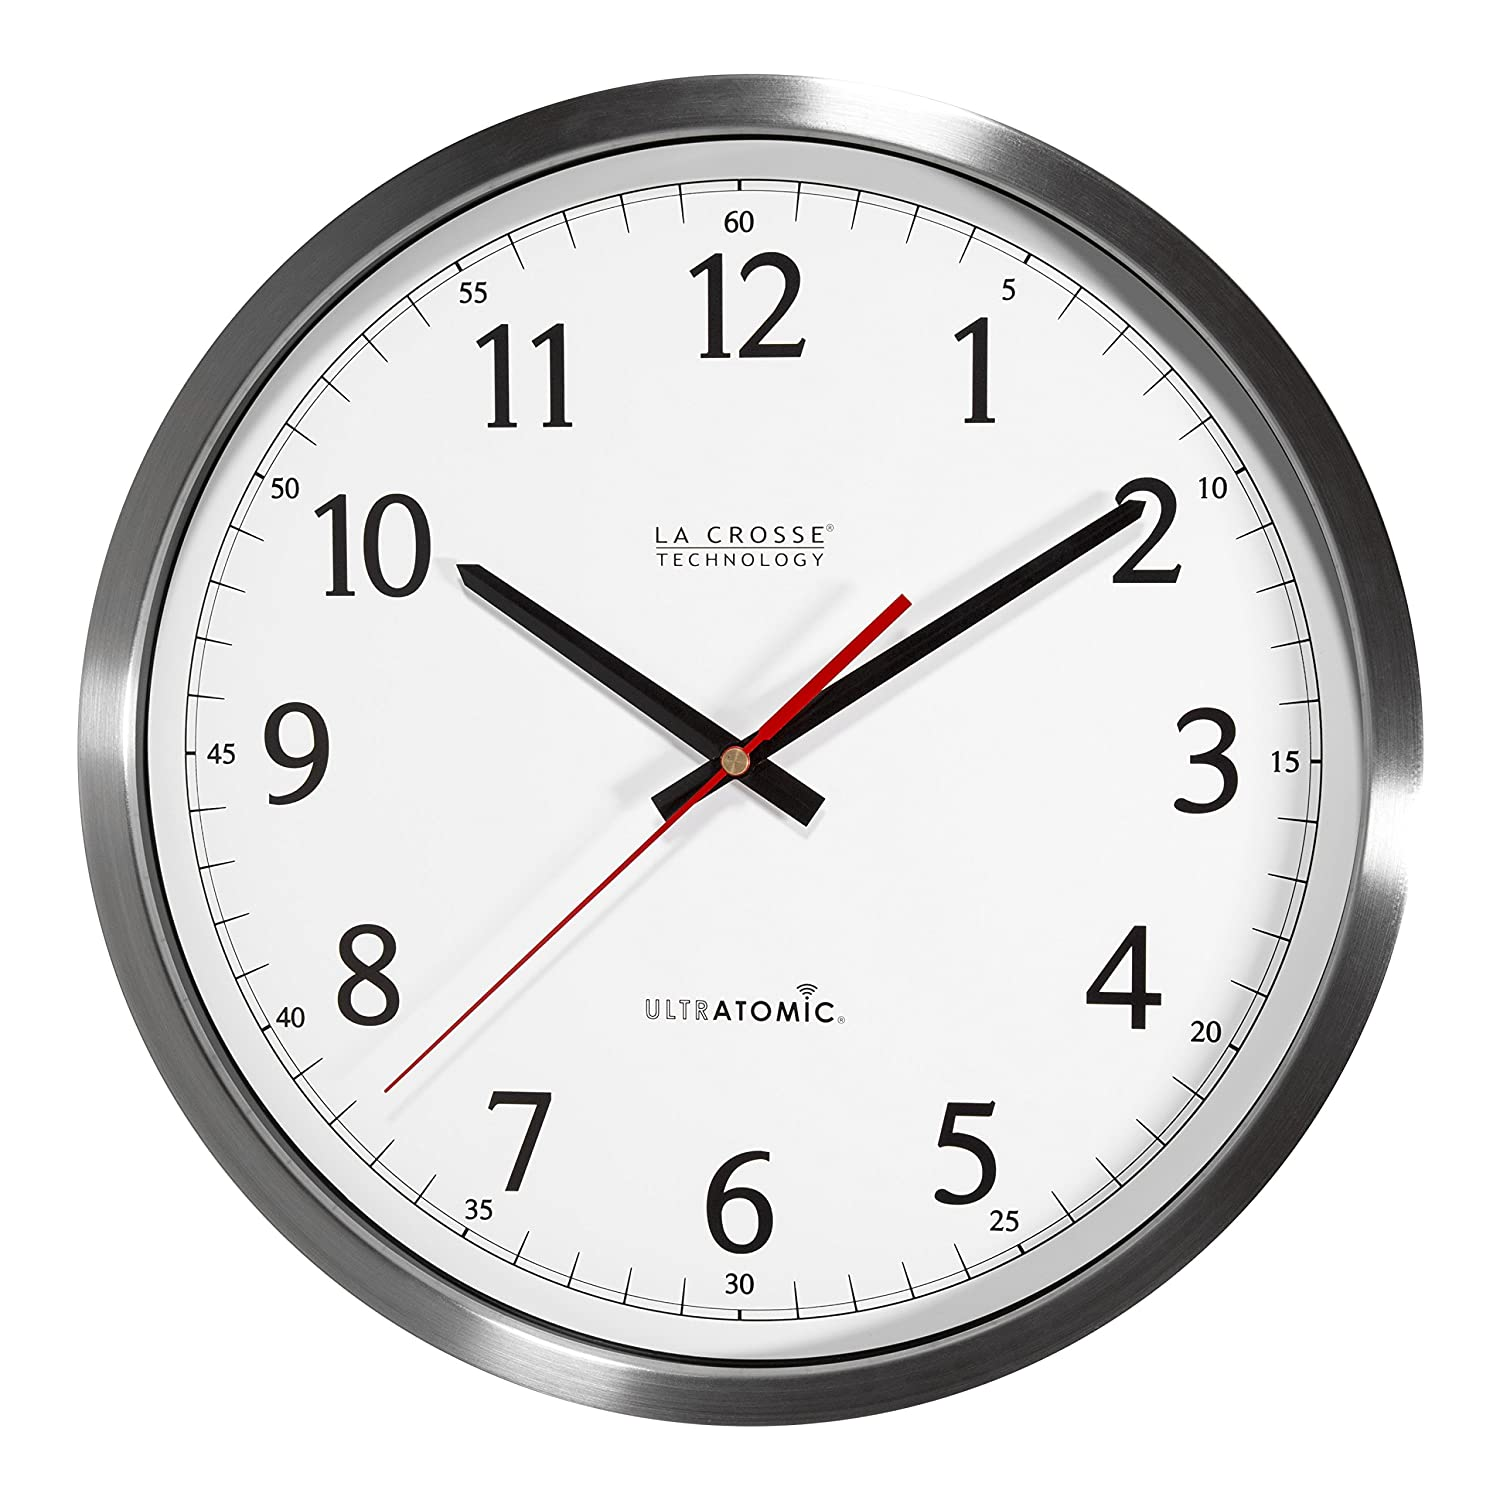 Amazon la crosse technology 404 1235ua ss 14 inch ultratomic amazon la crosse technology 404 1235ua ss 14 inch ultratomic analog stainless steel wall clock home kitchen amipublicfo Image collections